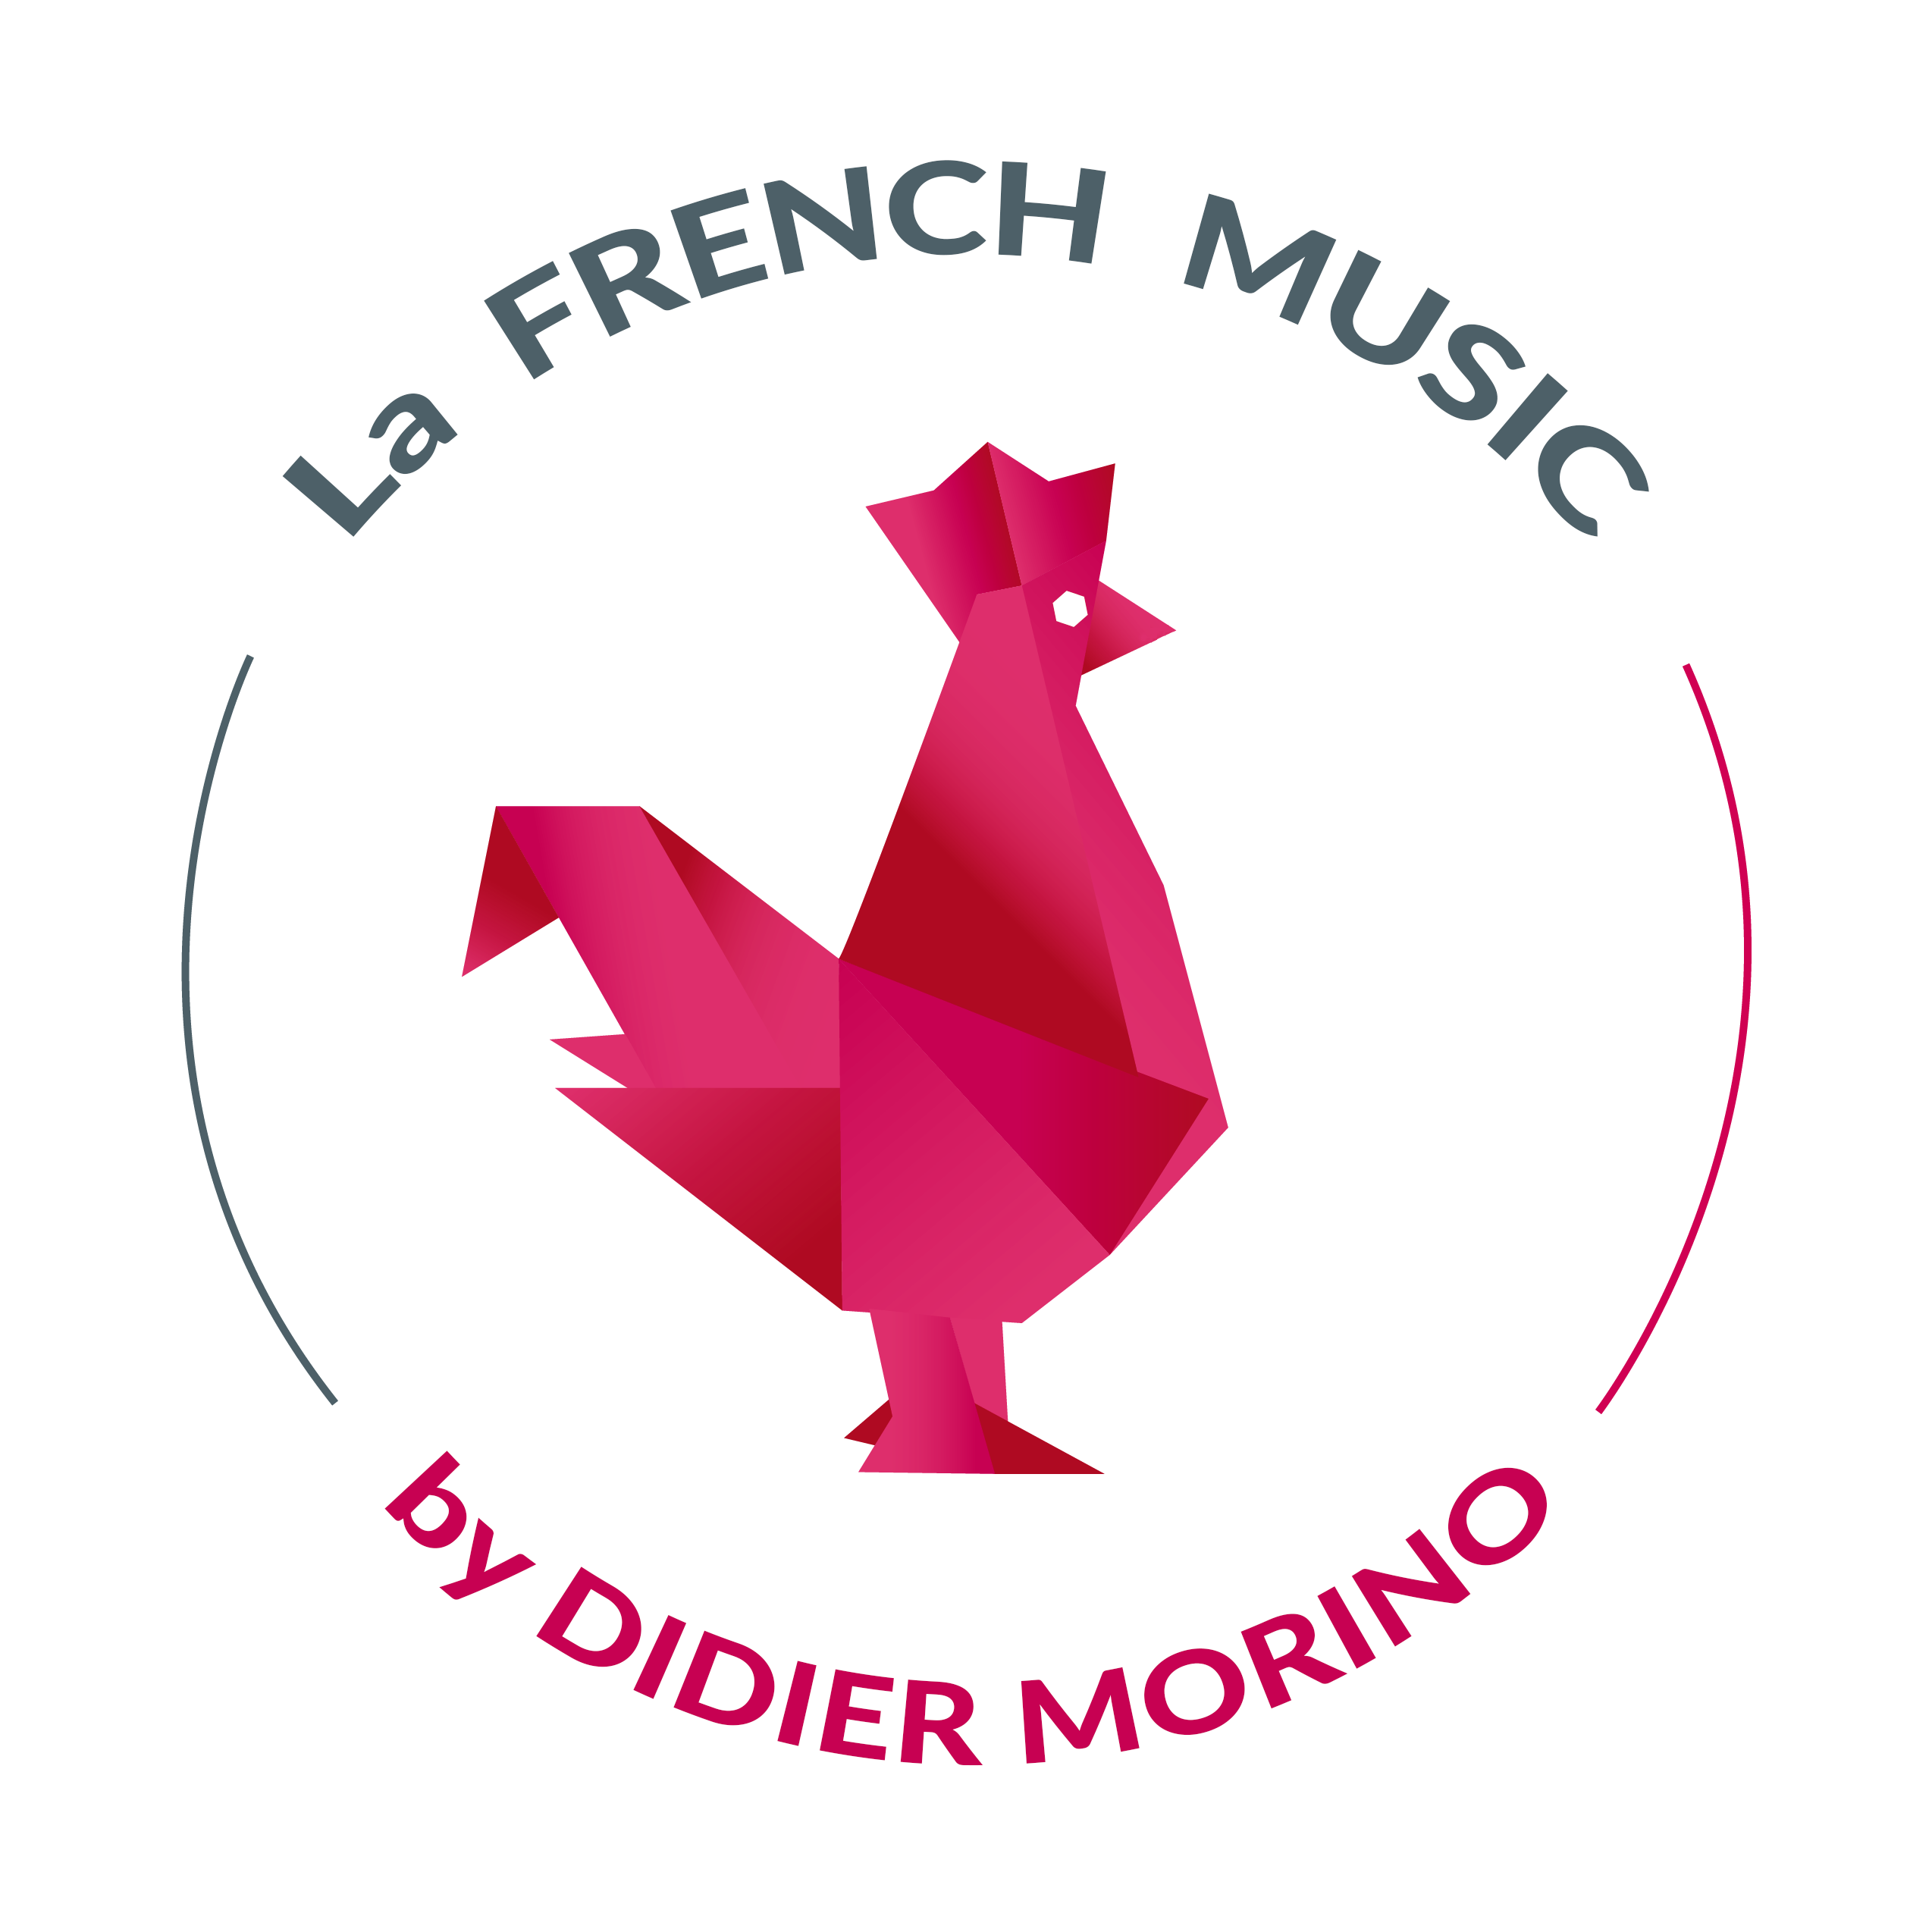 La French Music